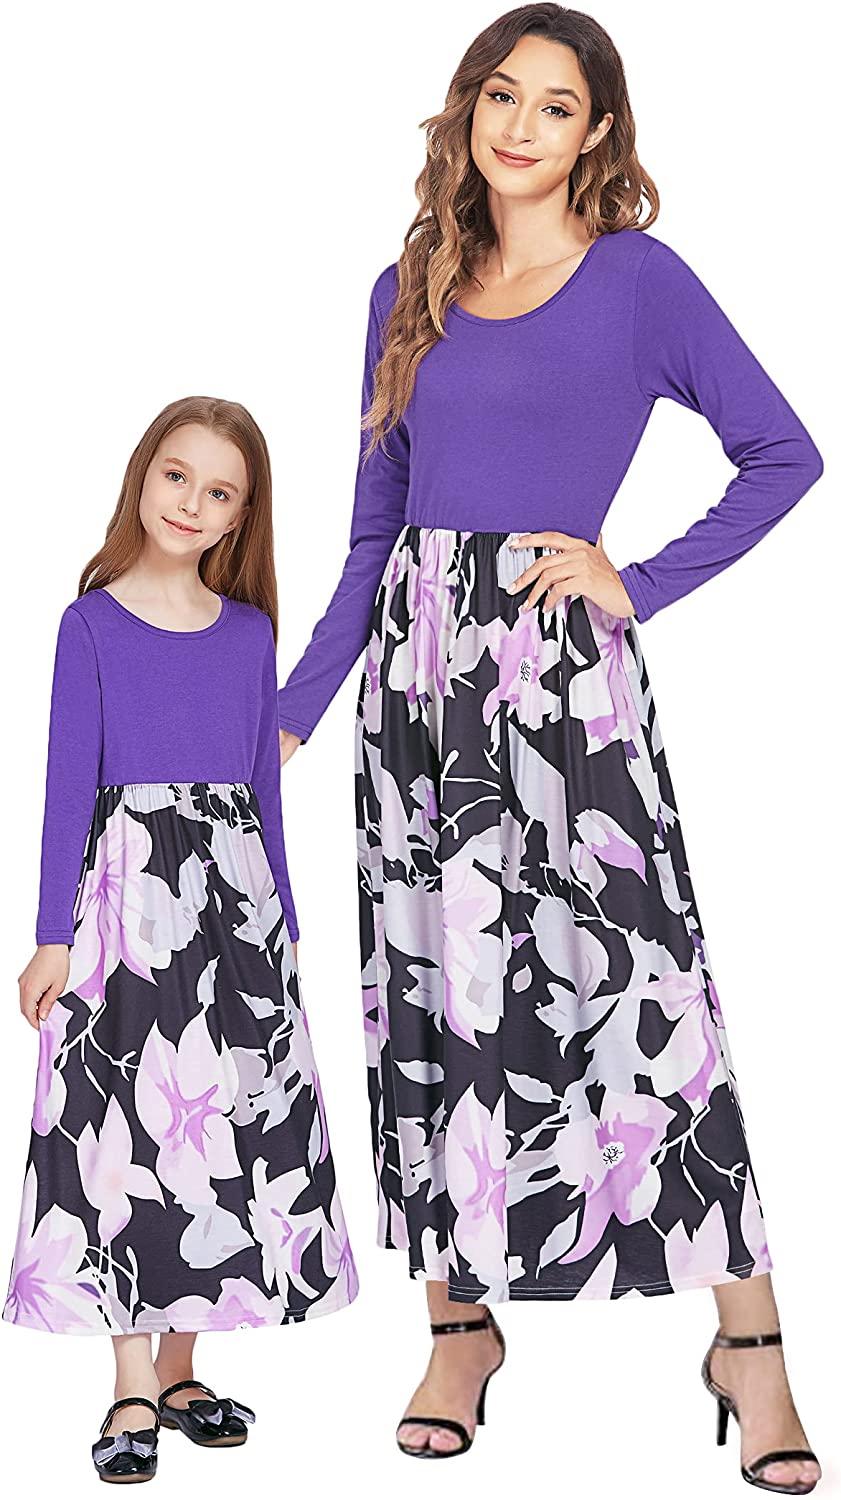 Greatchy Mommy and Me Dresses Ruffle V-Neck Short Sleeve Cotton Matching Family Outfits Summer Dress